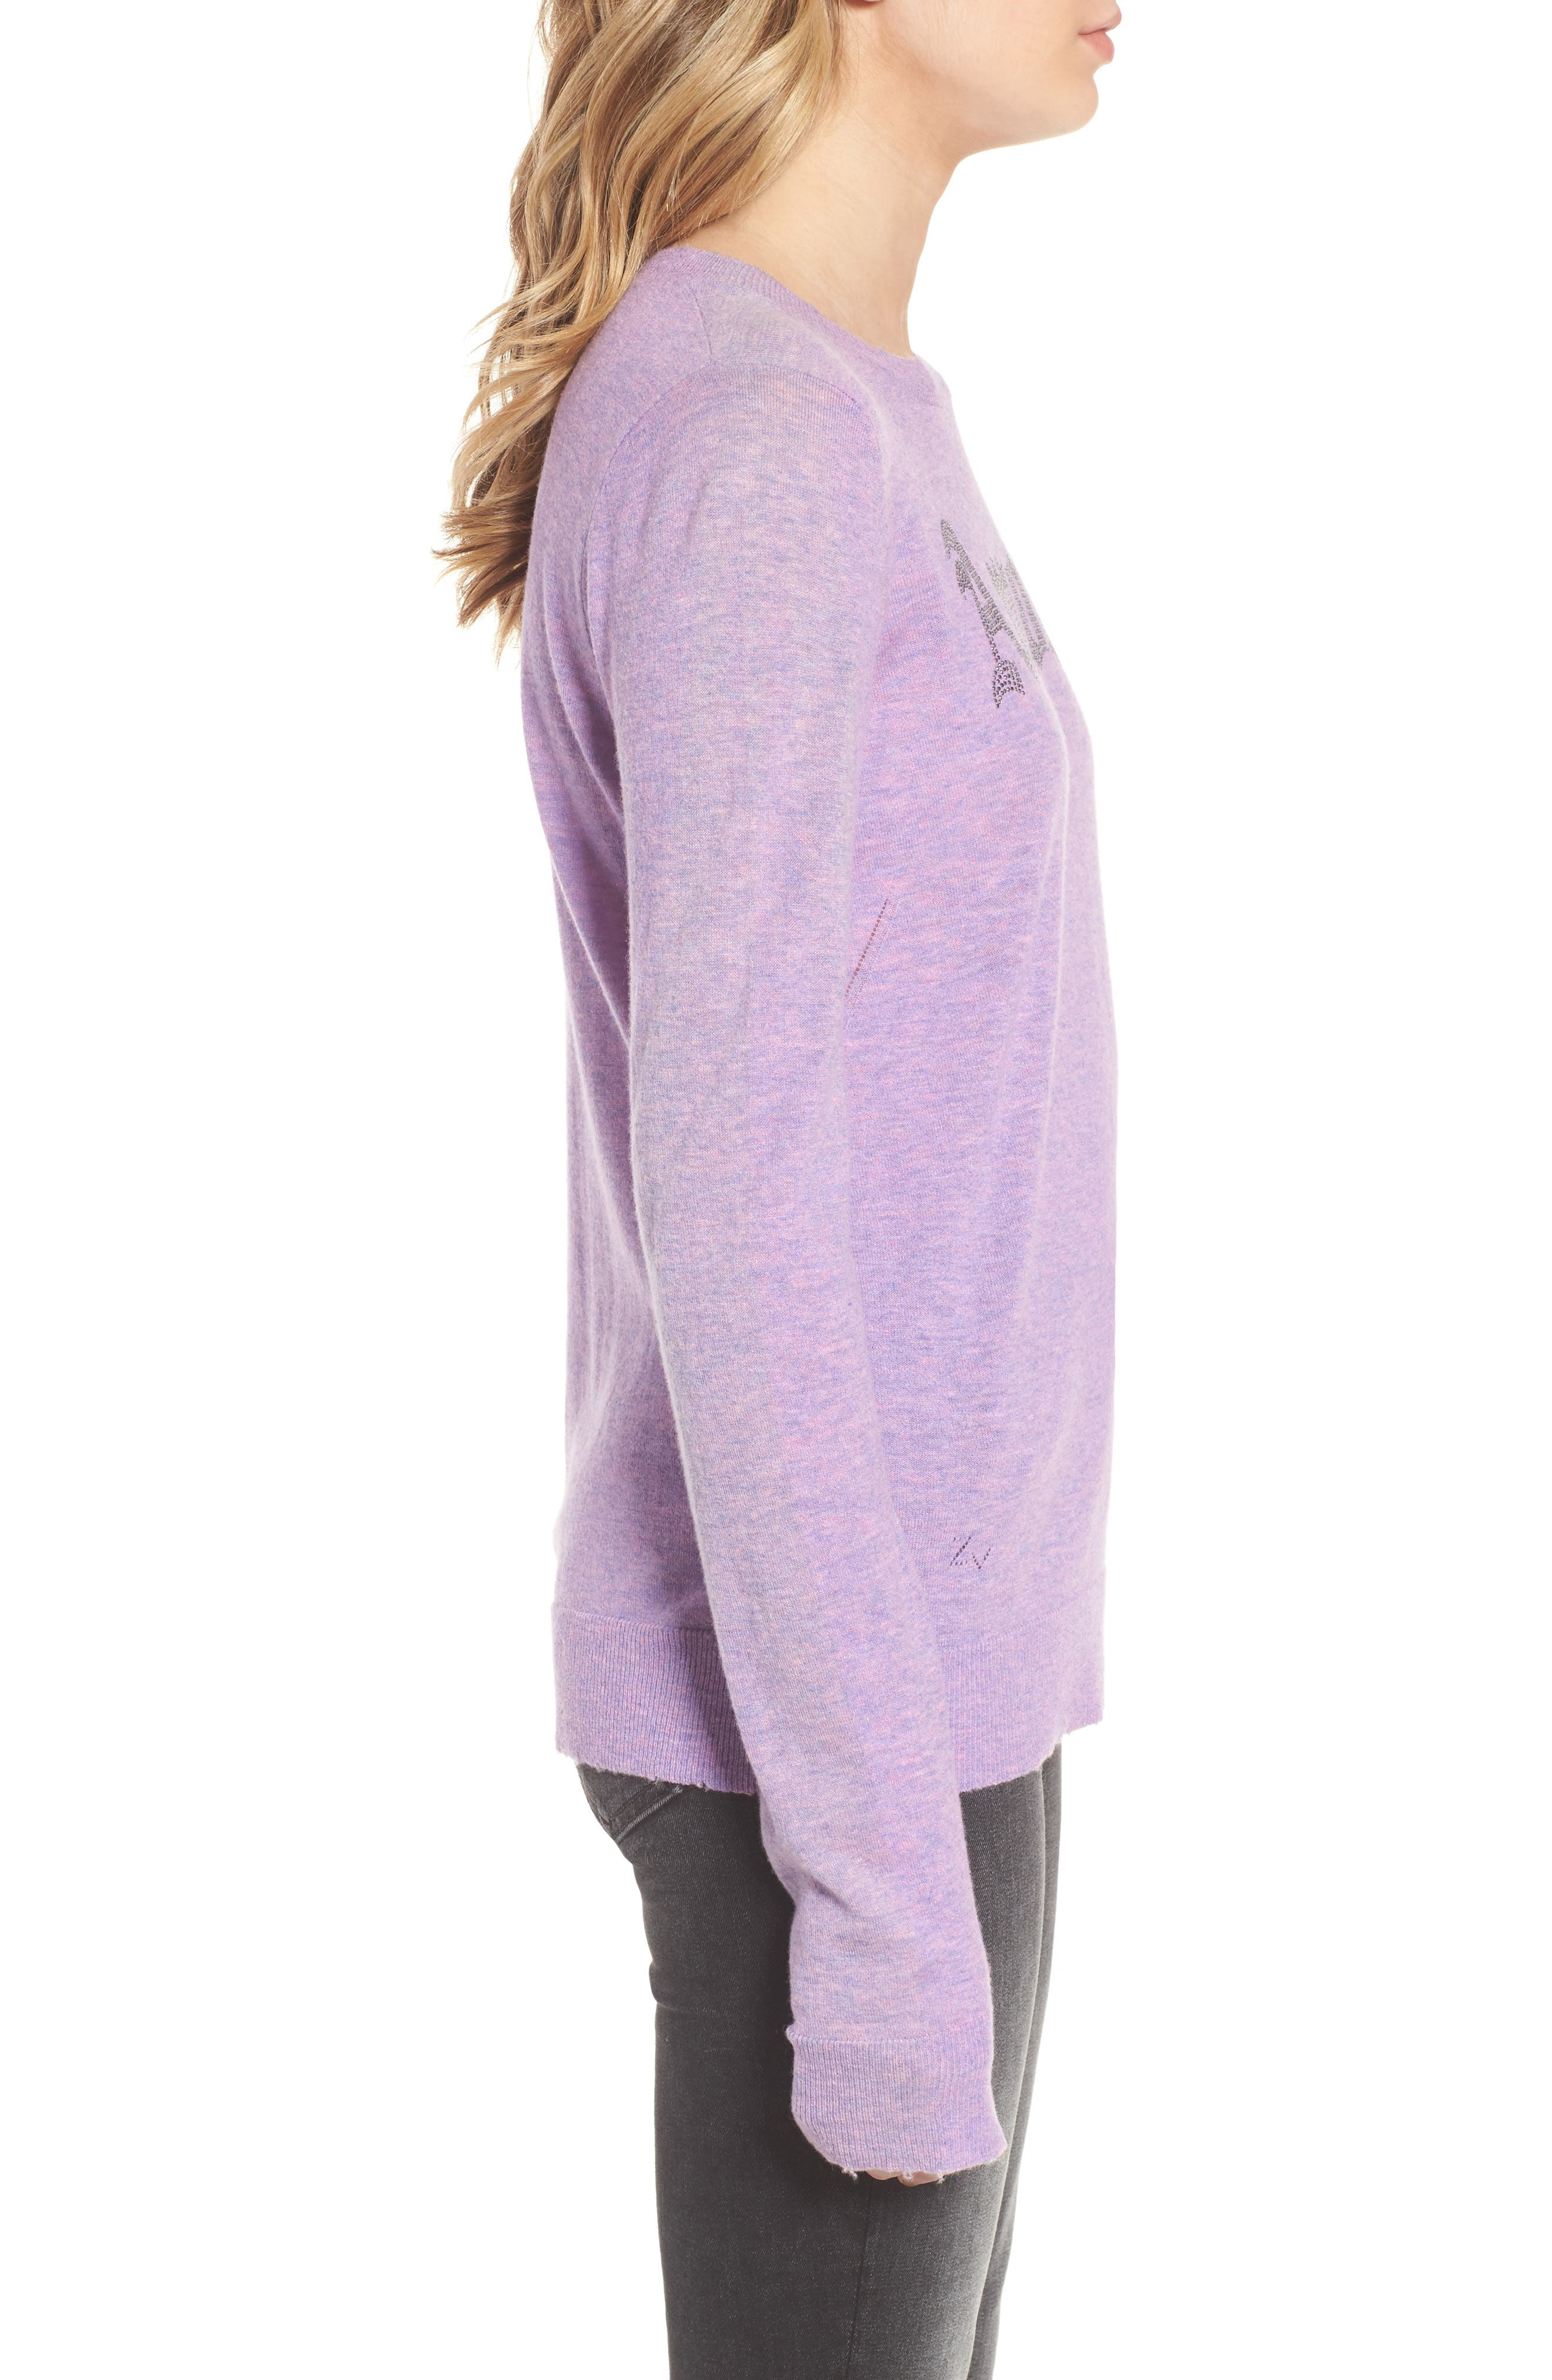 Miss Bis Cashmere Sweater,                             Alternate thumbnail 3, color,